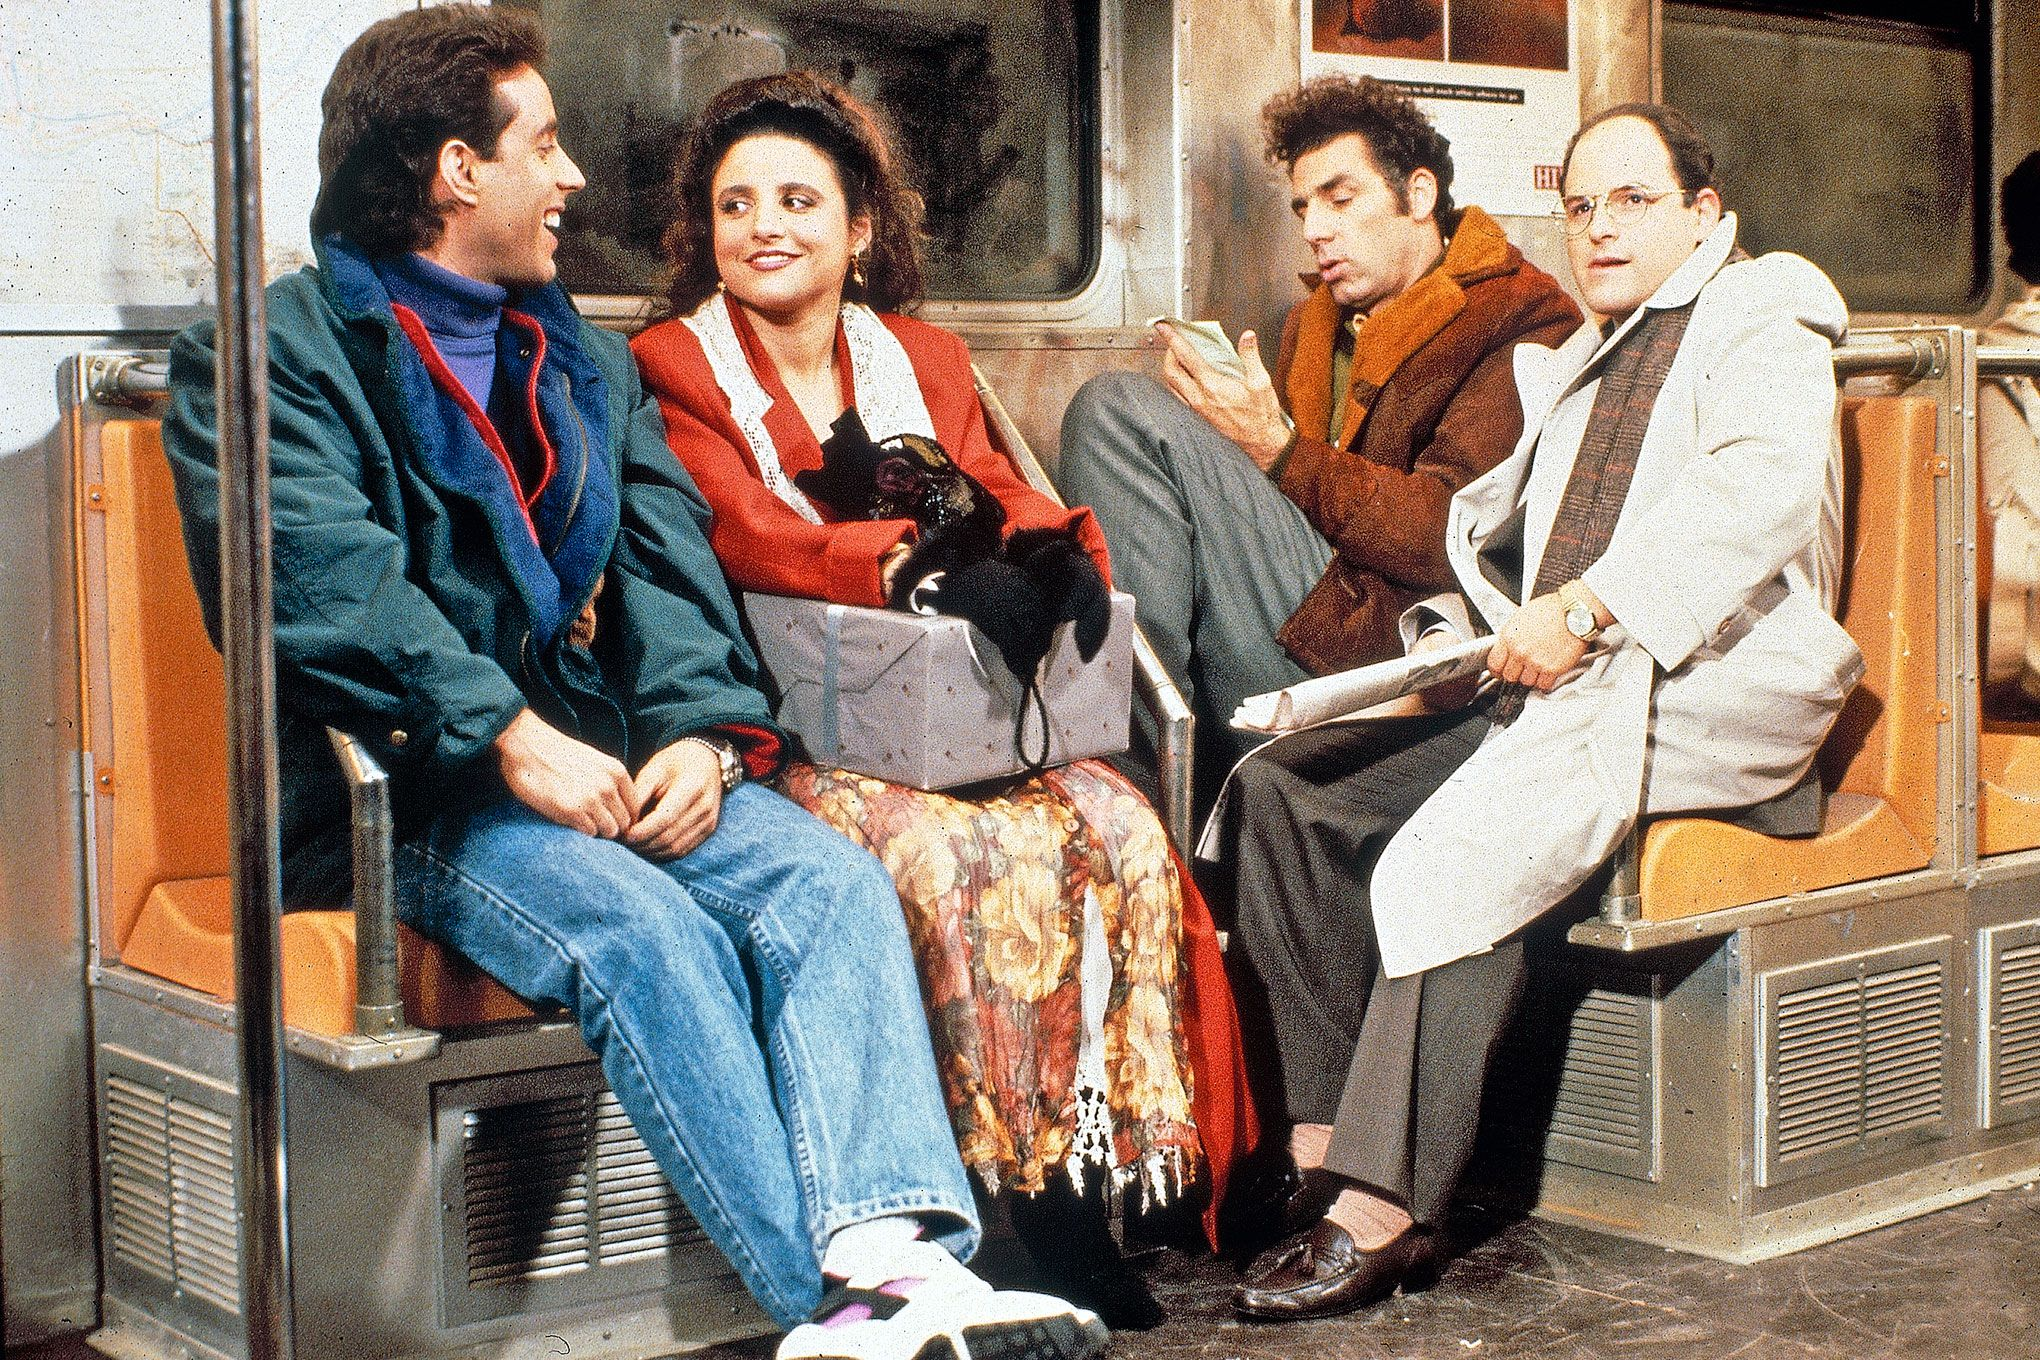 Seinfeld Llegará a Netflix en 2021 - Disponible en Amazon Prime